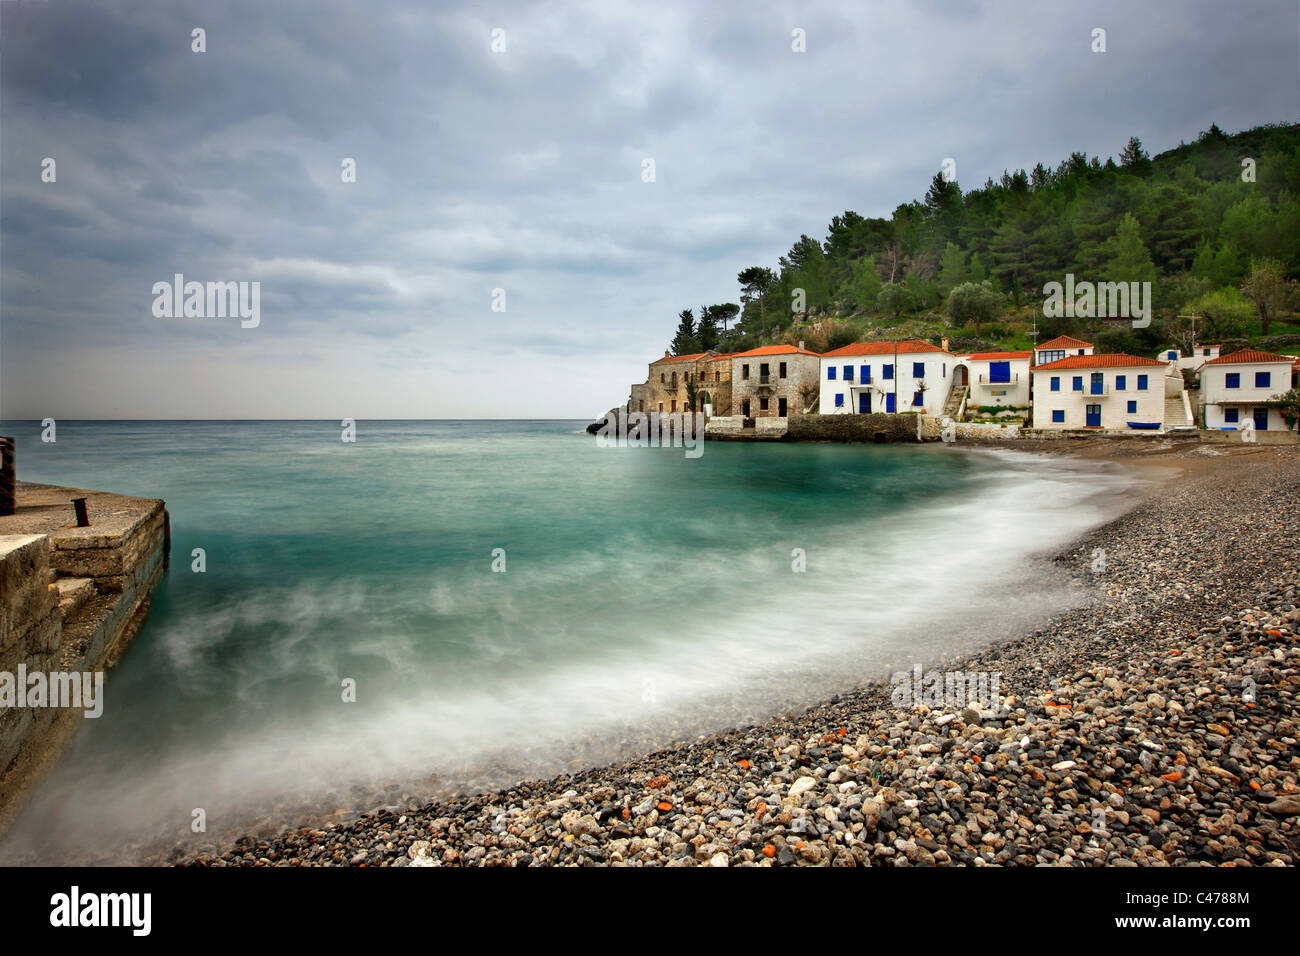 Kyparissi, a beautiful seaside village with traditional architecture at Lakonia prefecture, Peloponnese, Greece - Stock Image